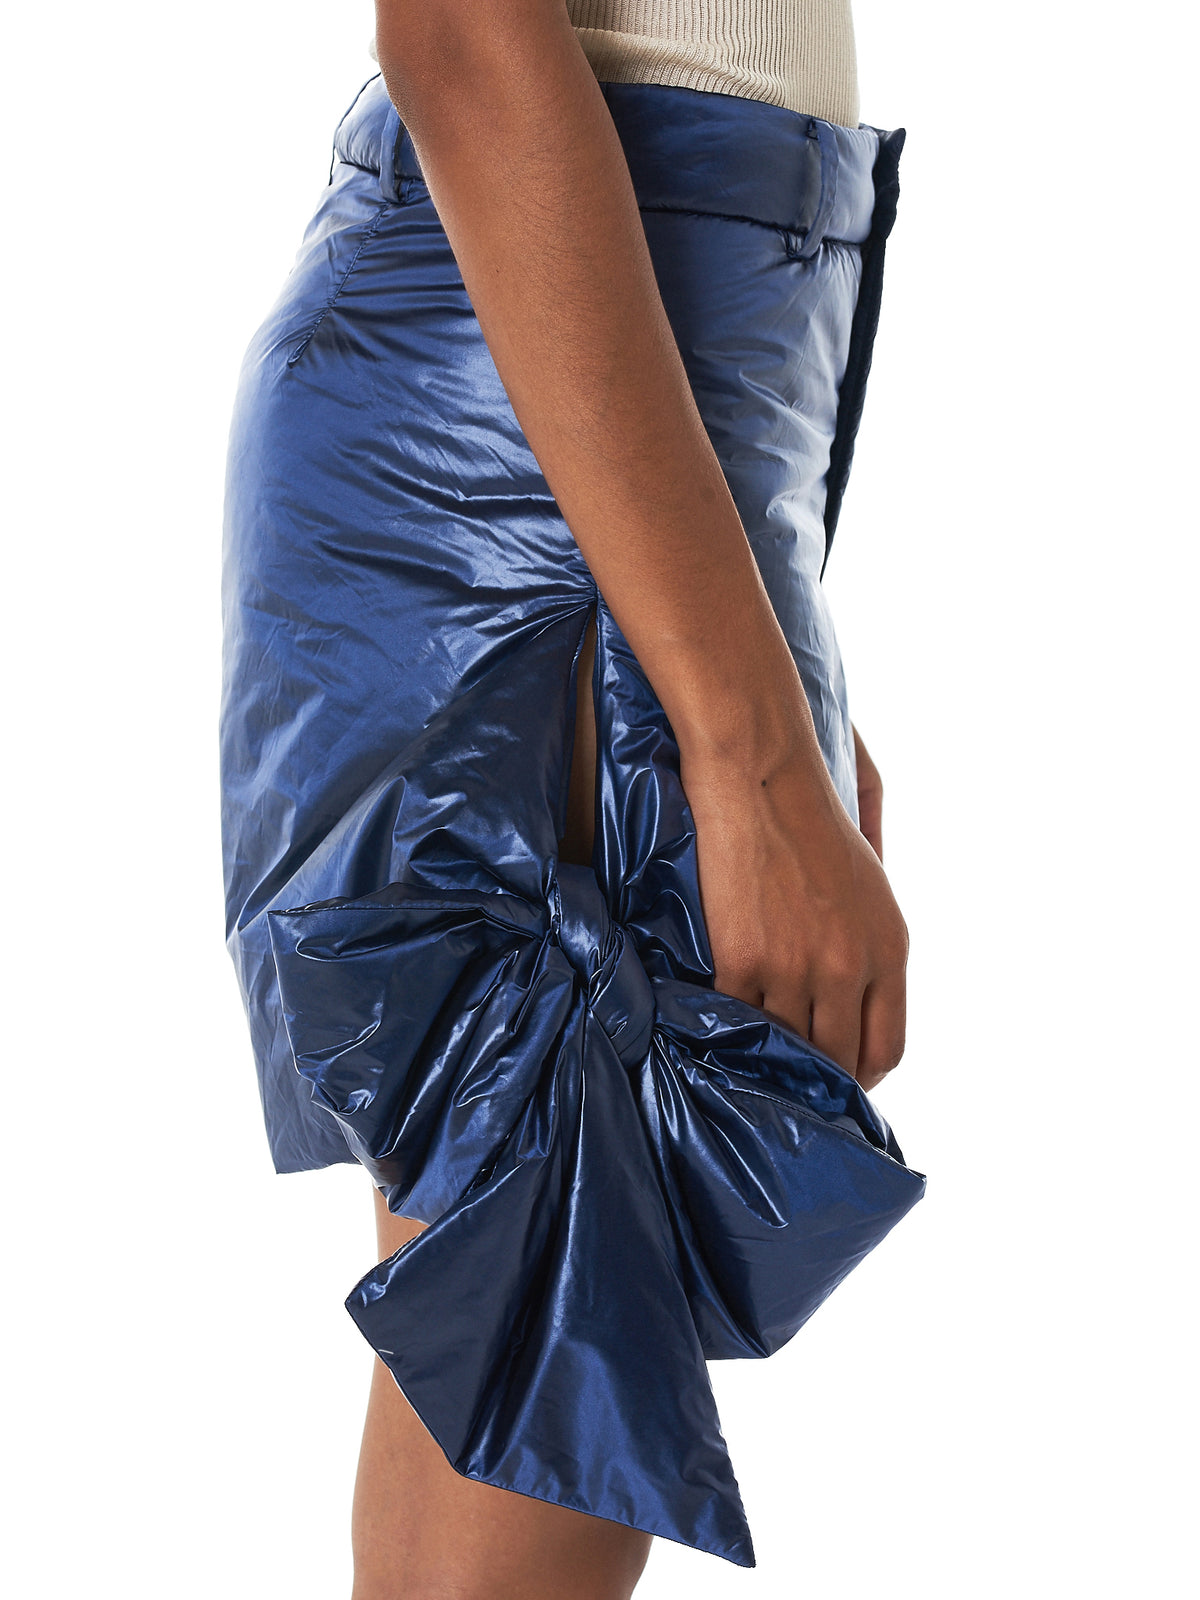 Bowed Metallic Shorts (067-A-PA04-NAVY)